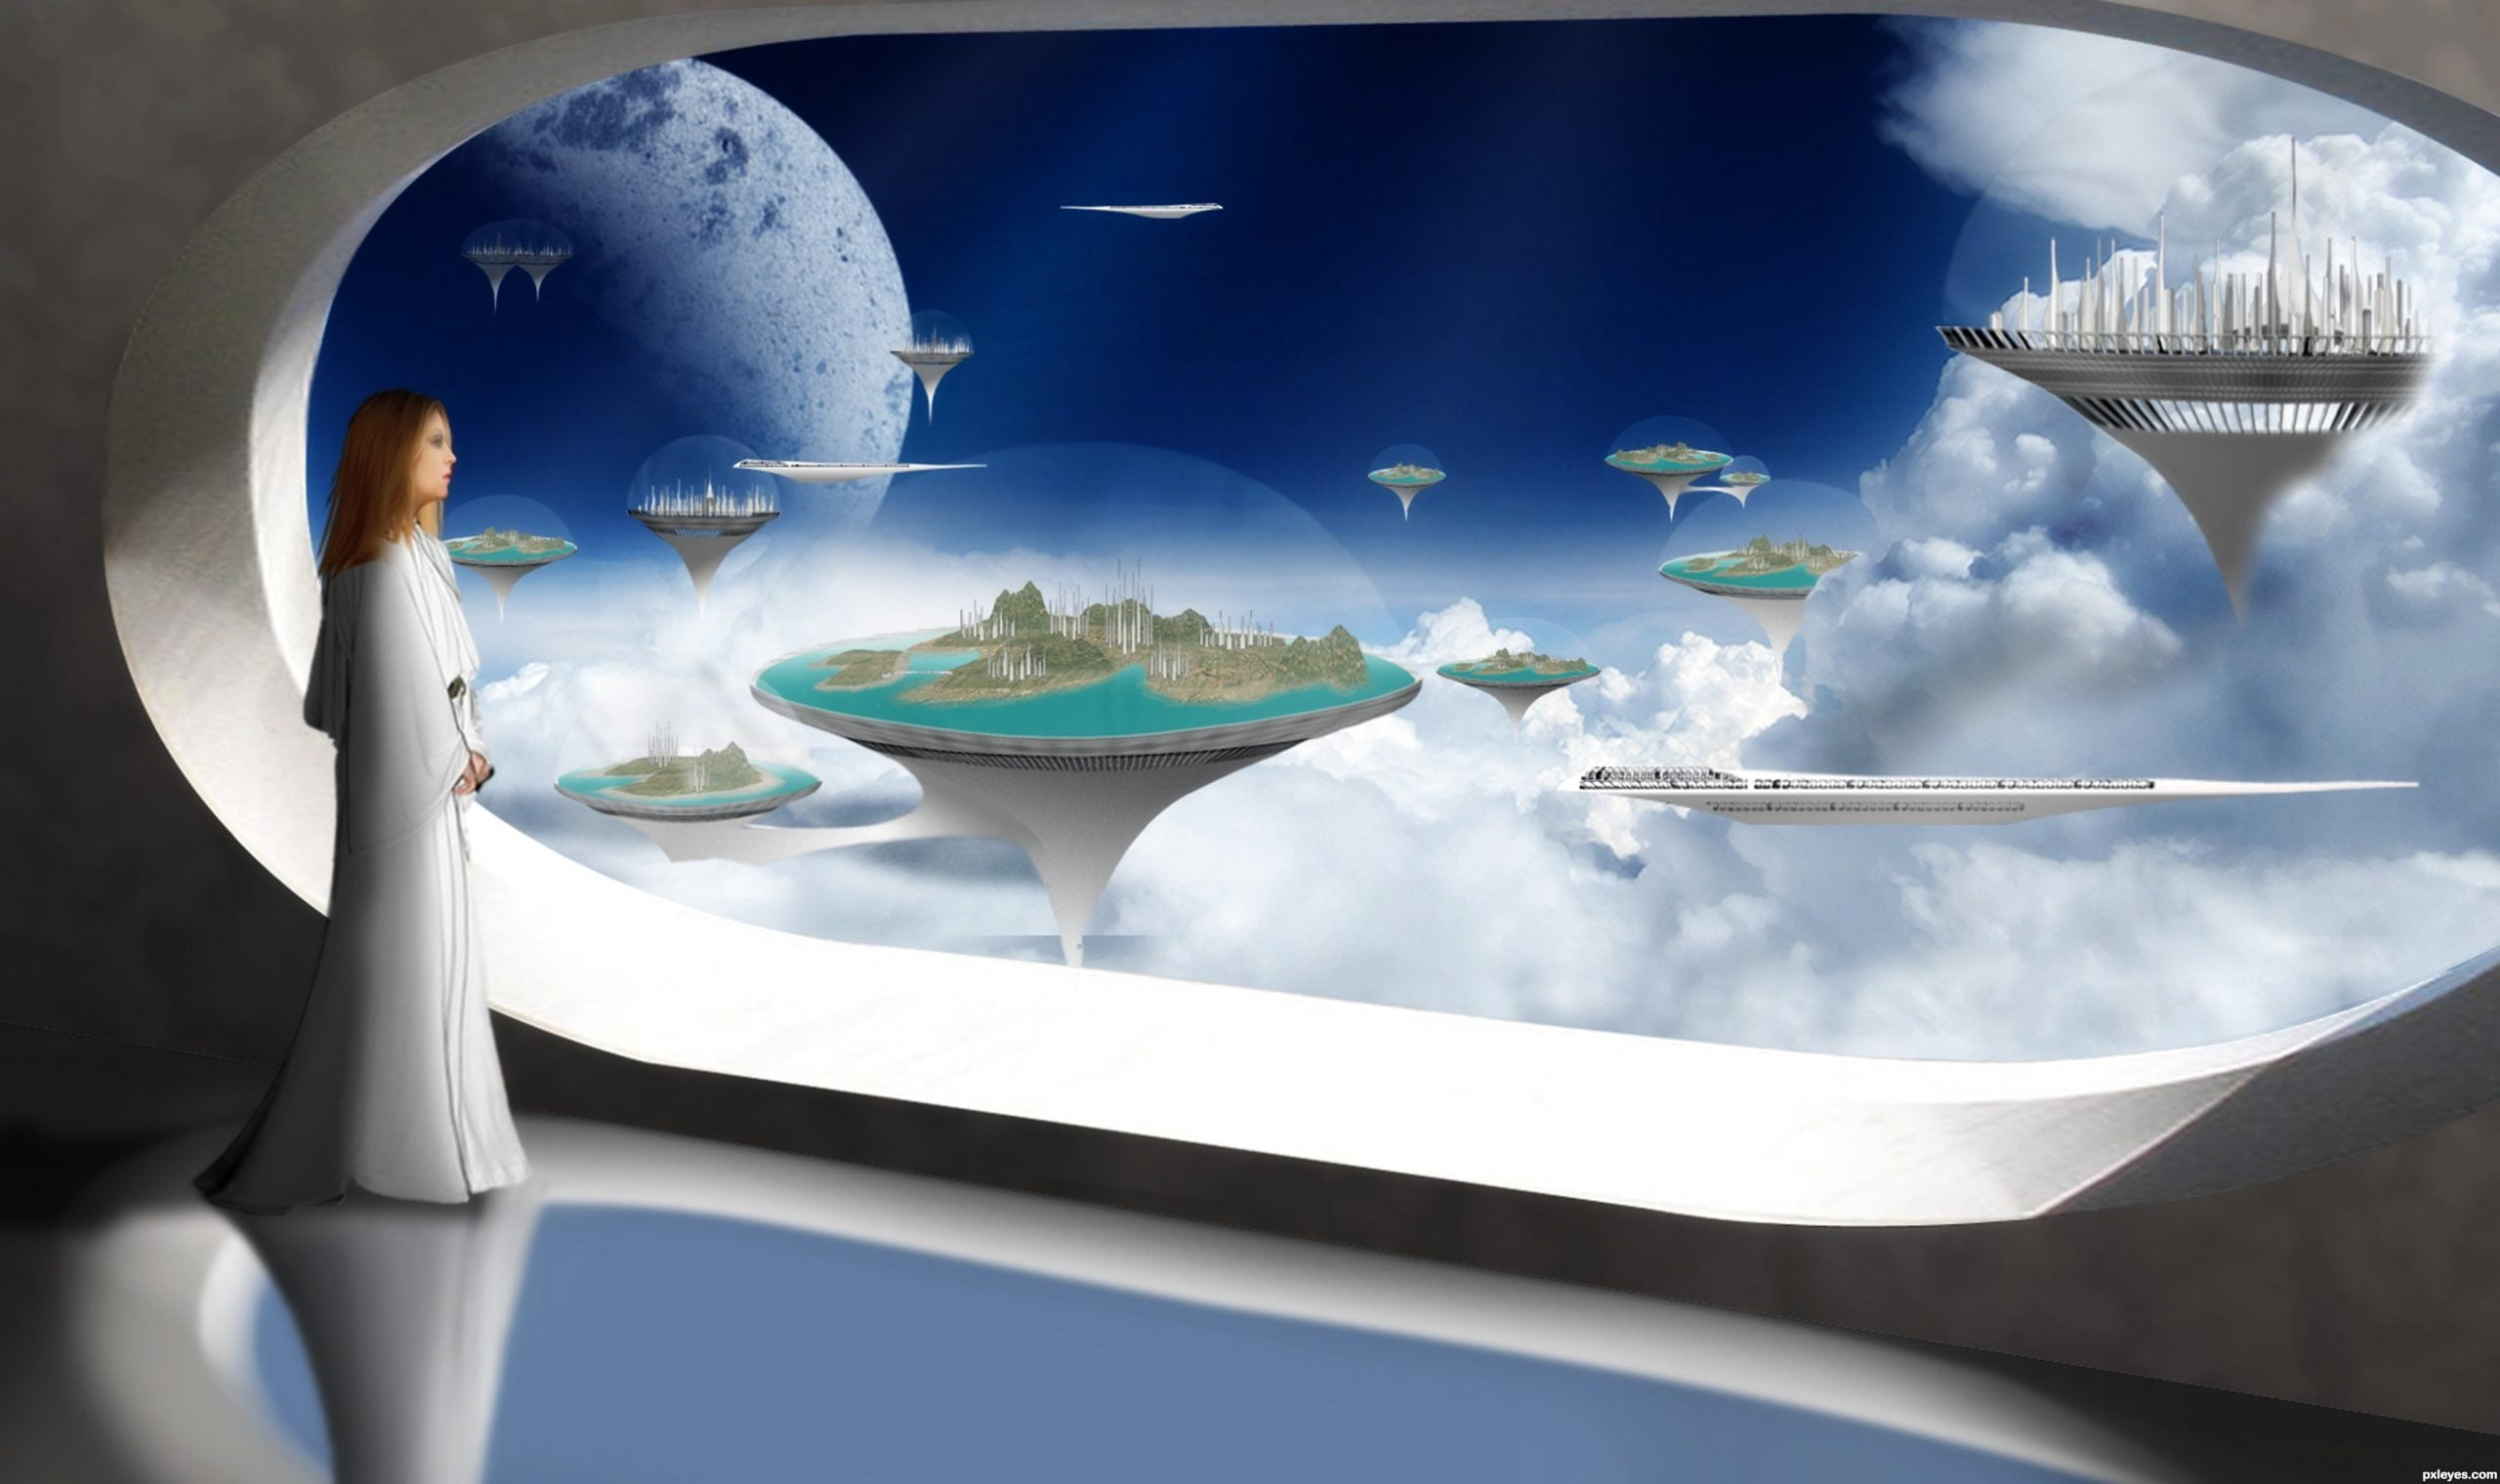 https://prepareforchange.net/wp-content/uploads/2016/05/Pleiadians-The-Galactic-Federation-of-Light-5069249780050_hires-scaled.jpg